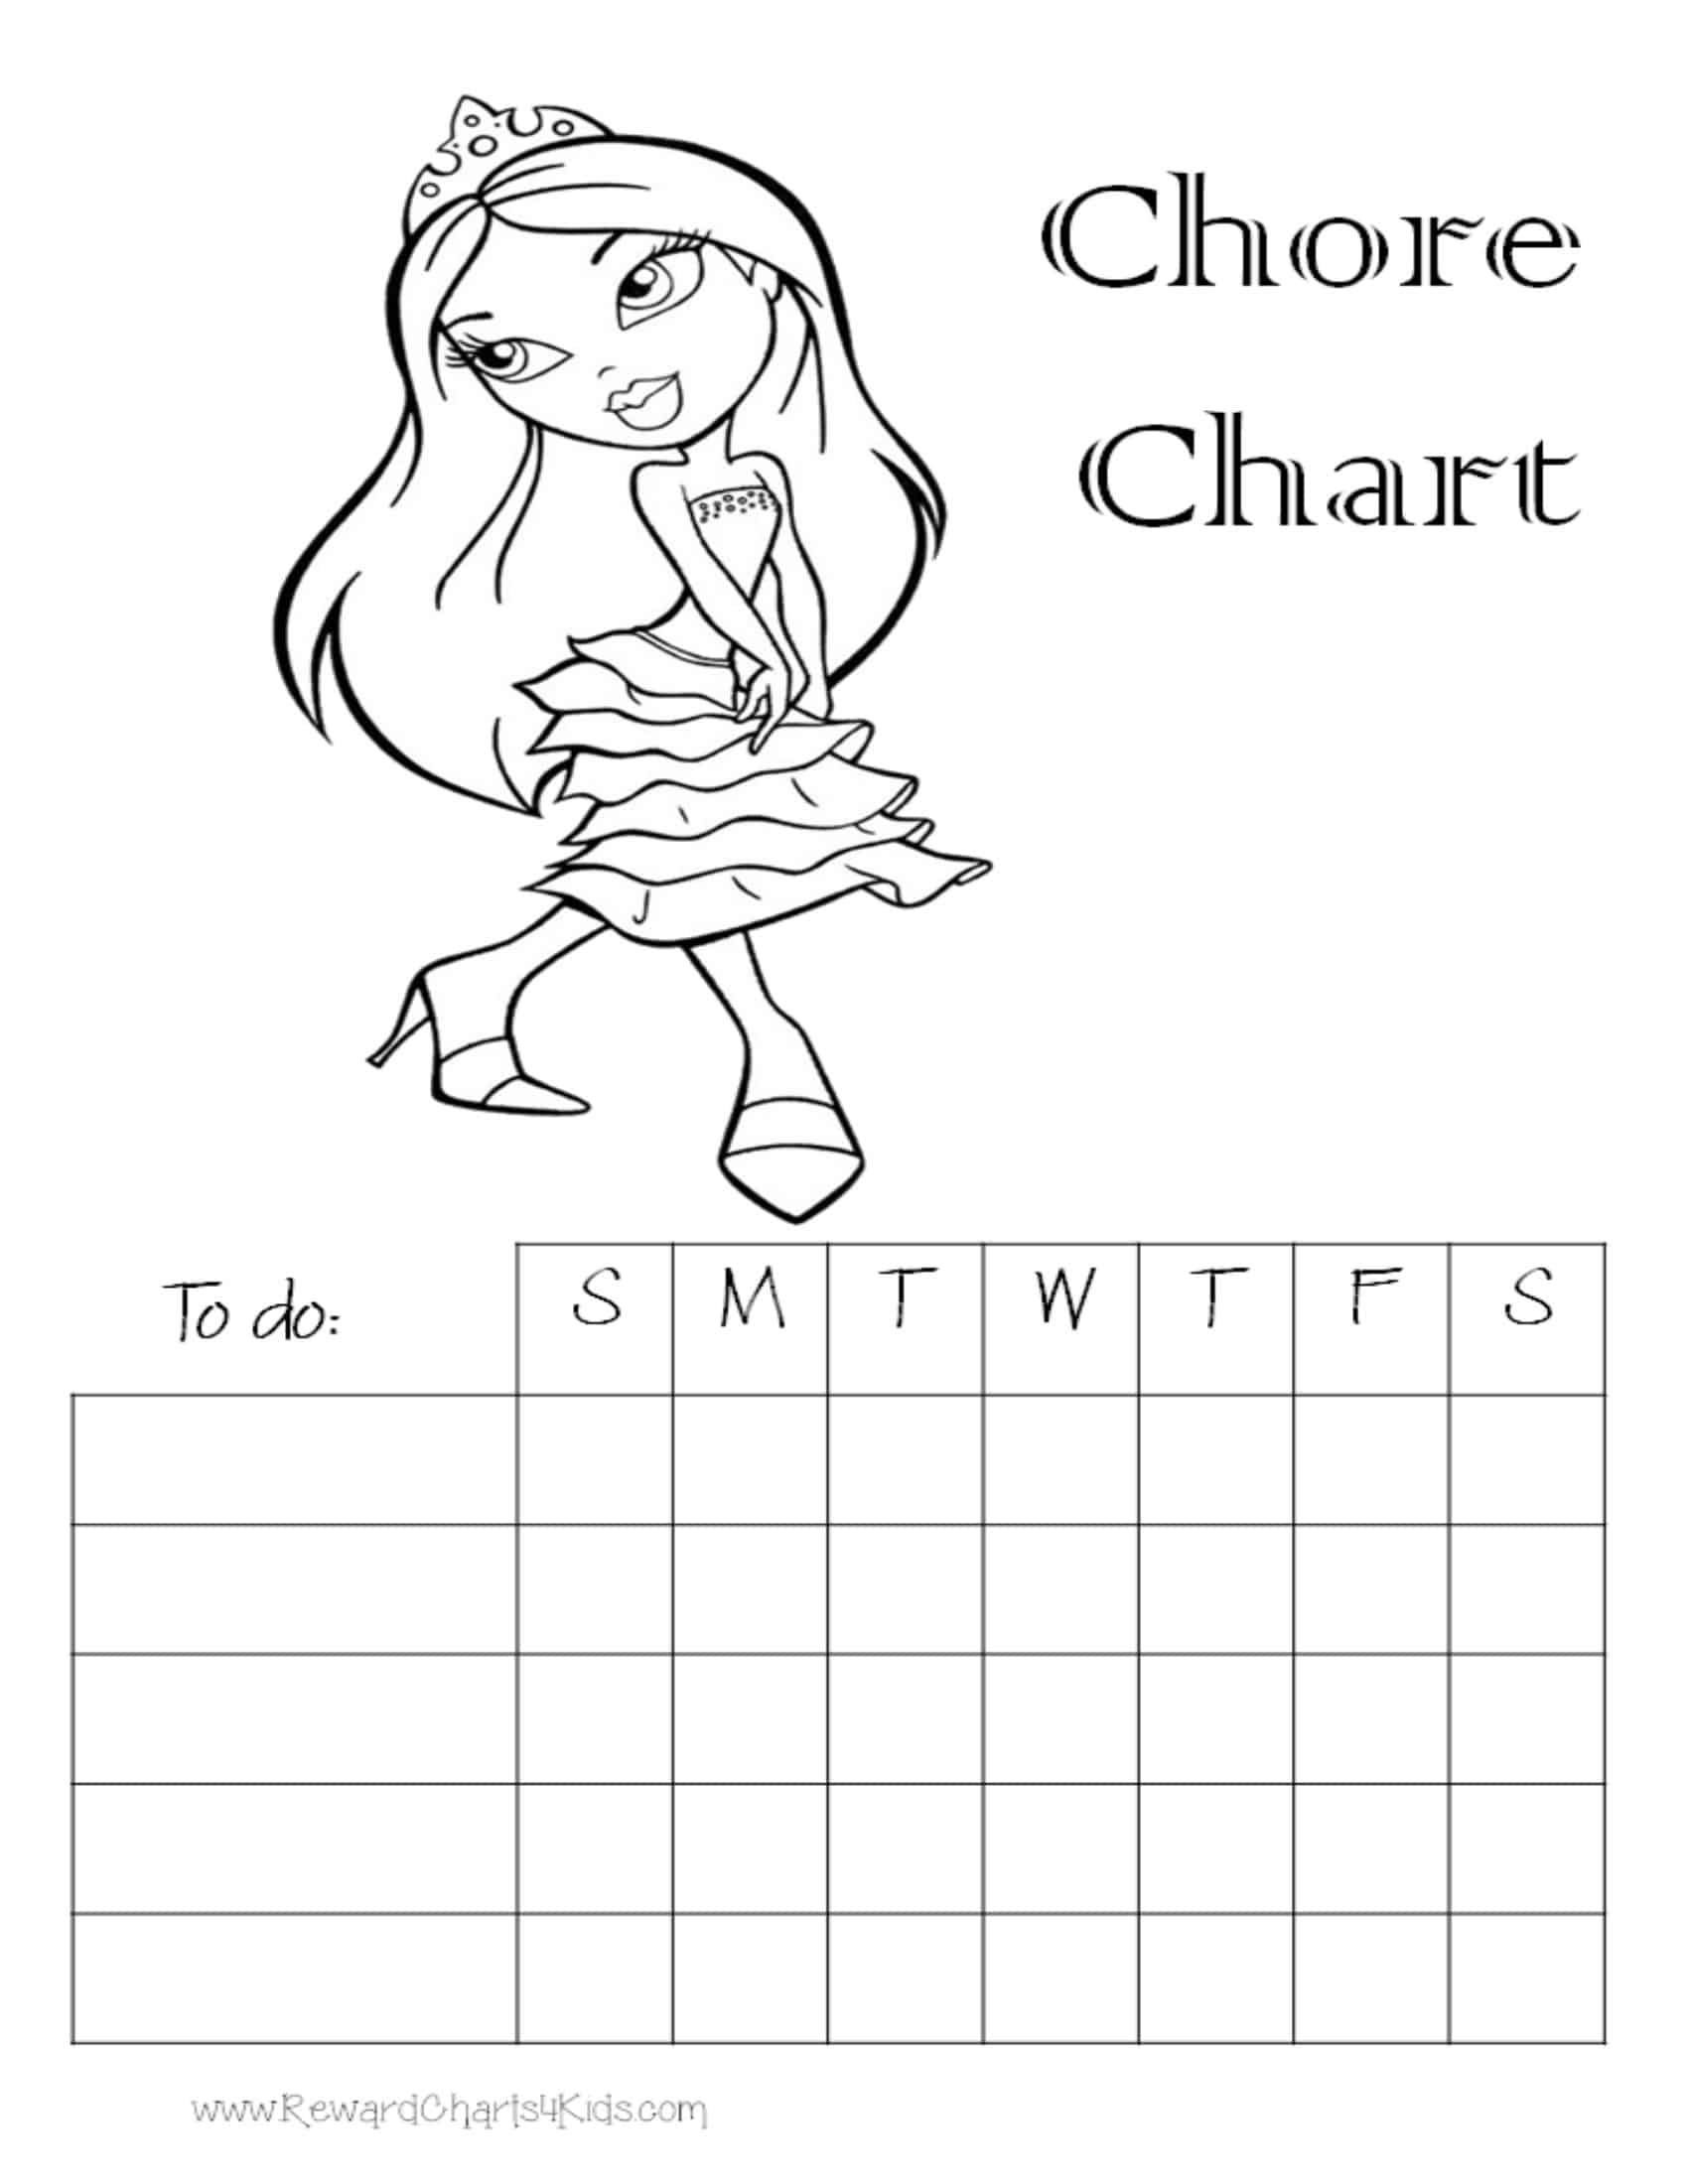 Blank Tally Chart Template For Kids Pdf Download